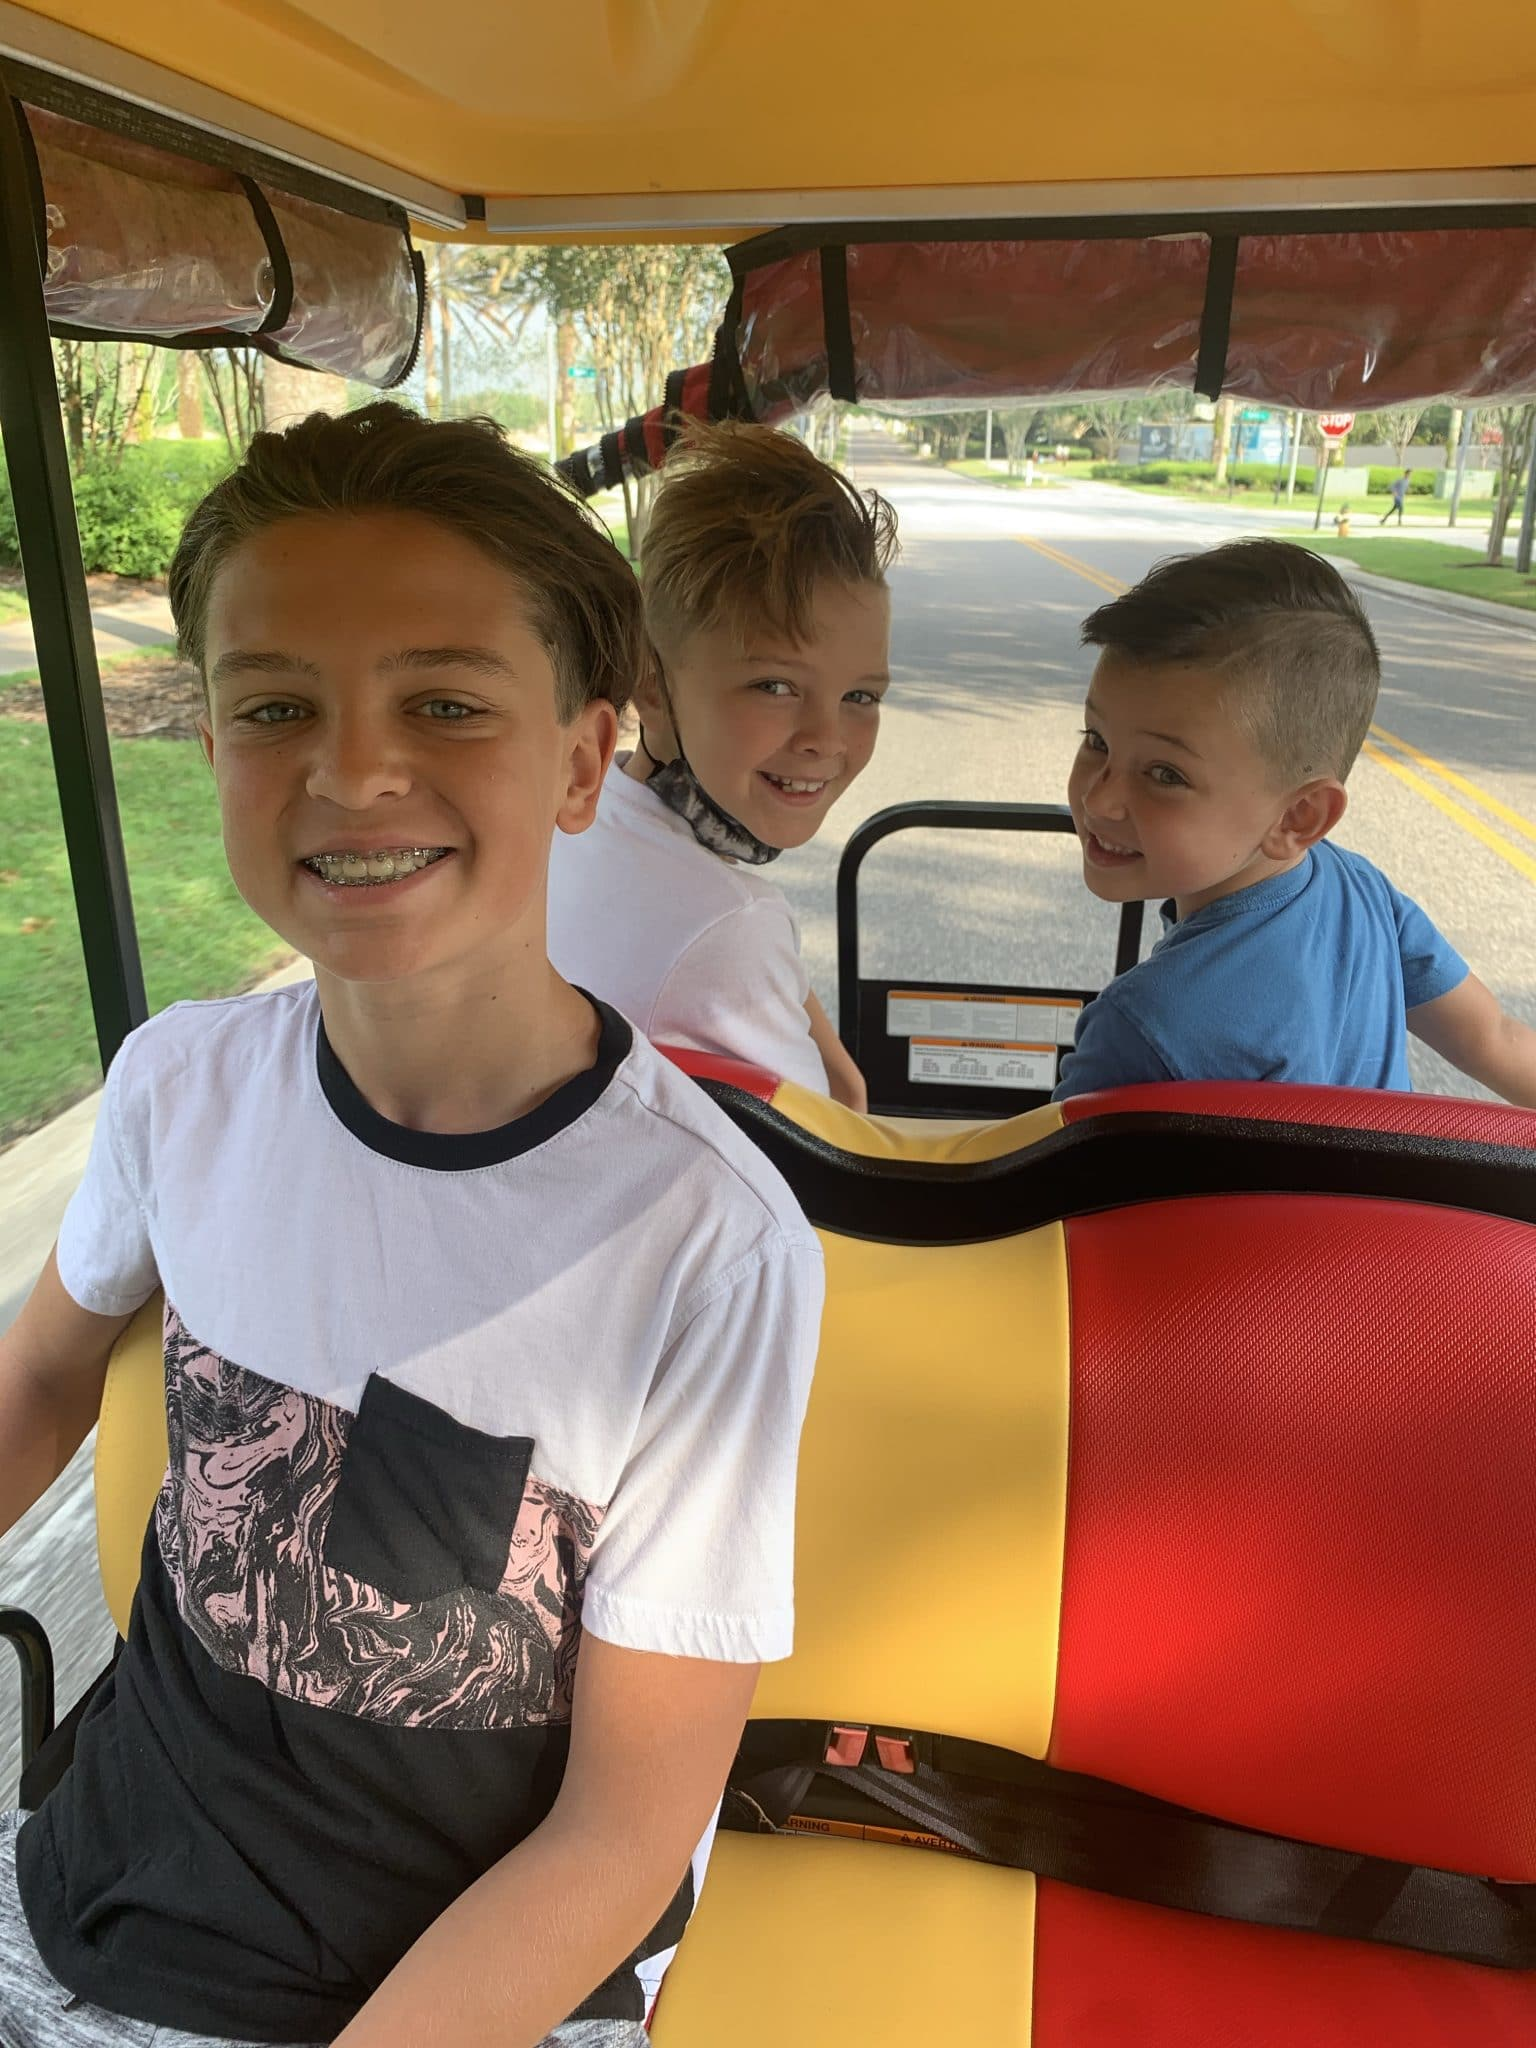 Reunion Resort, Stilettos and Diapers, Central Florida Travel, Kissimmee Trip